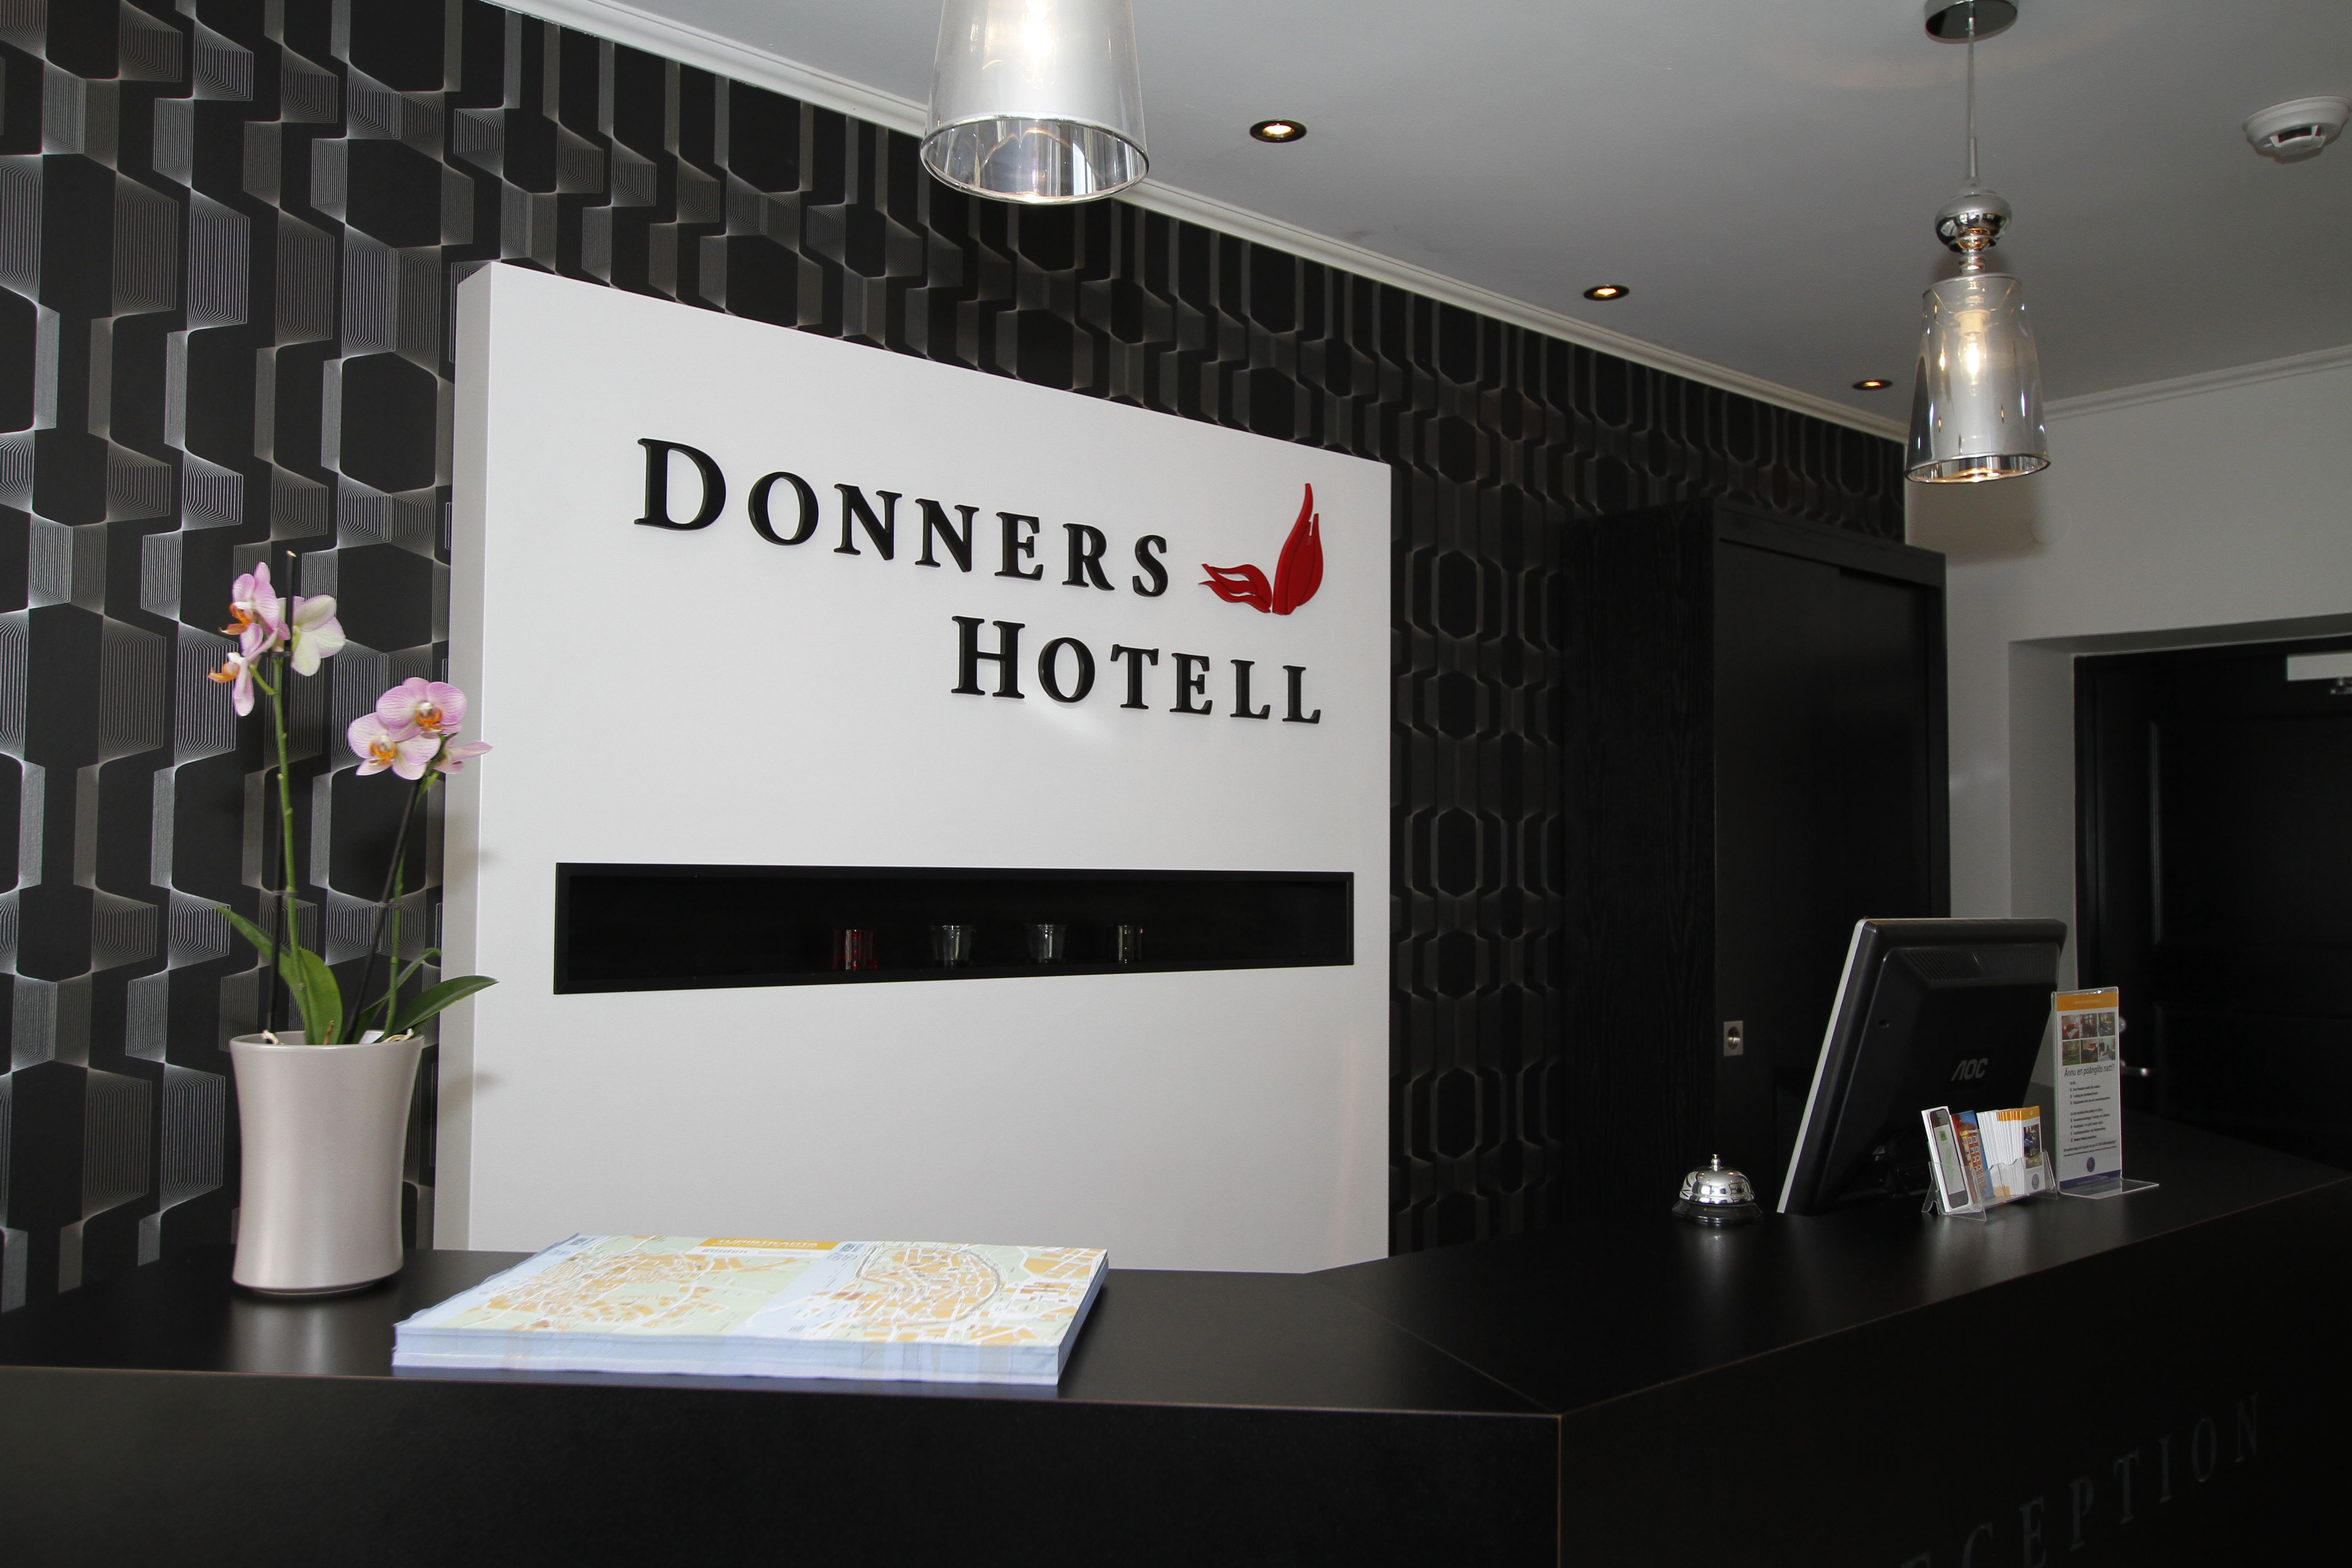 Donners Hotell Visby